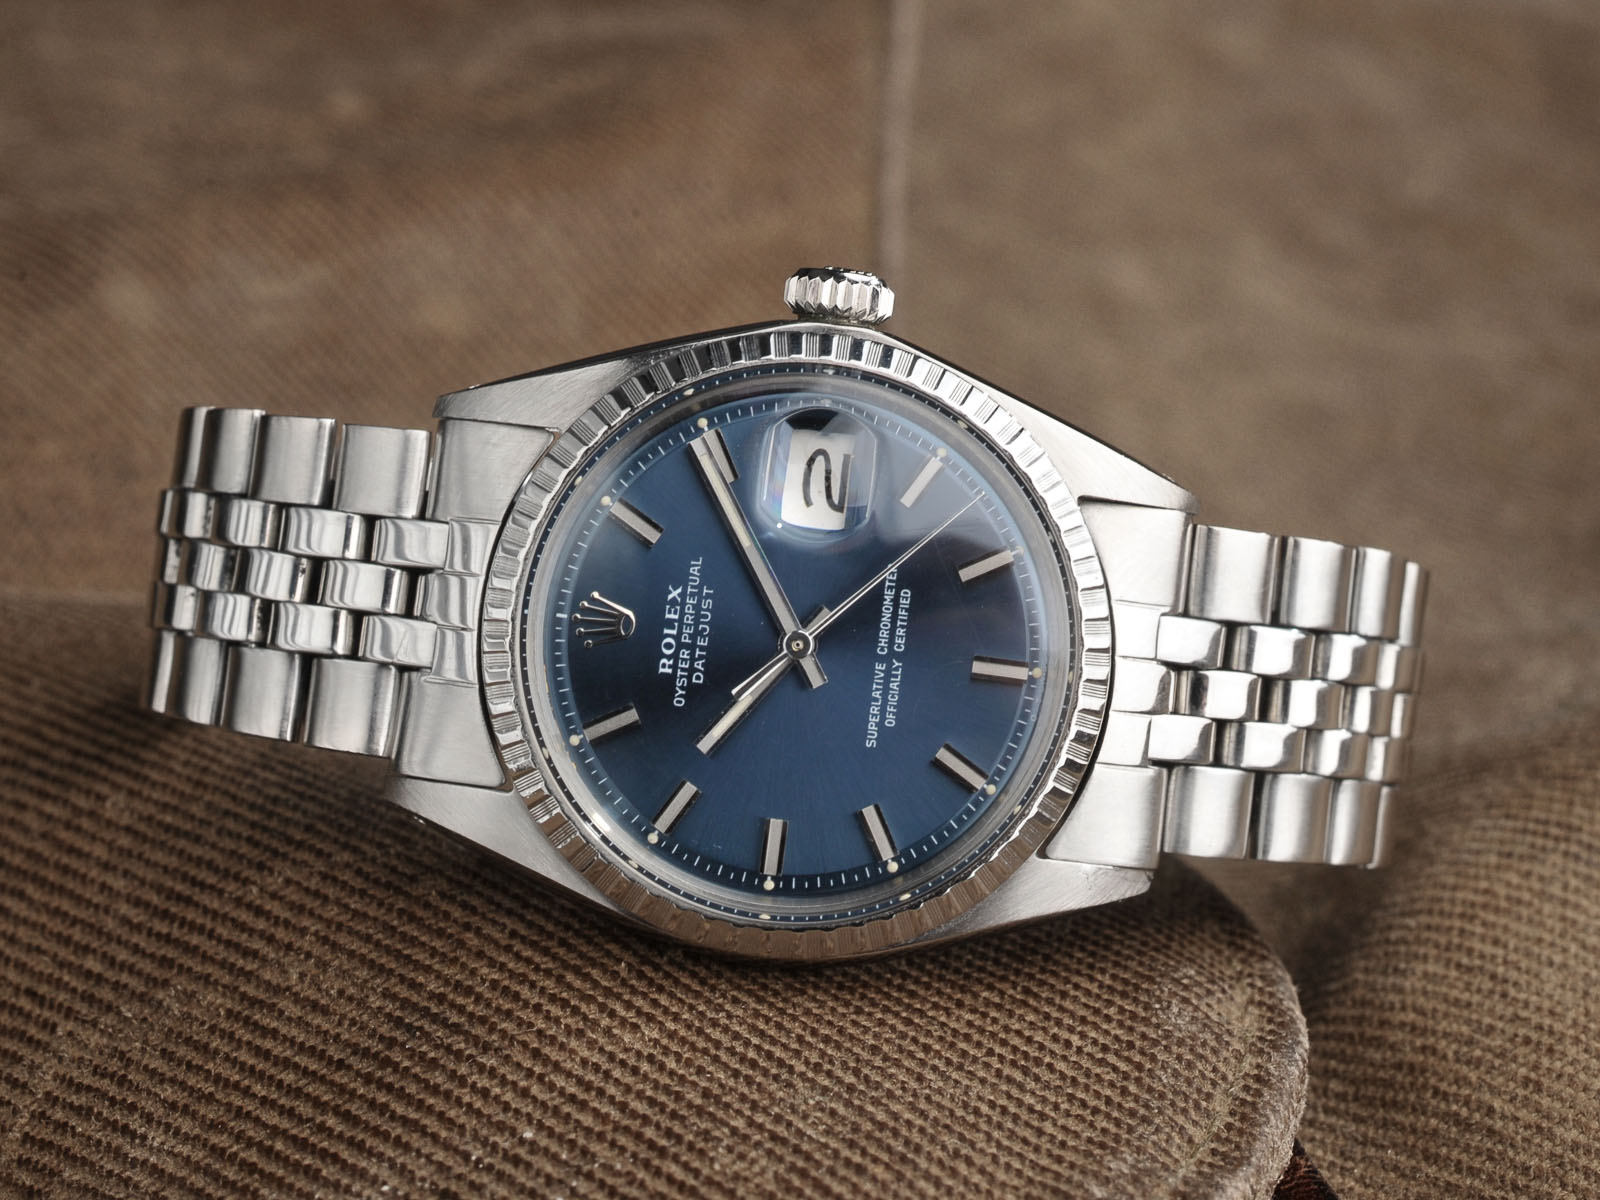 Rolex 1603 Datejust Blue Wide Body Bulang And Sons